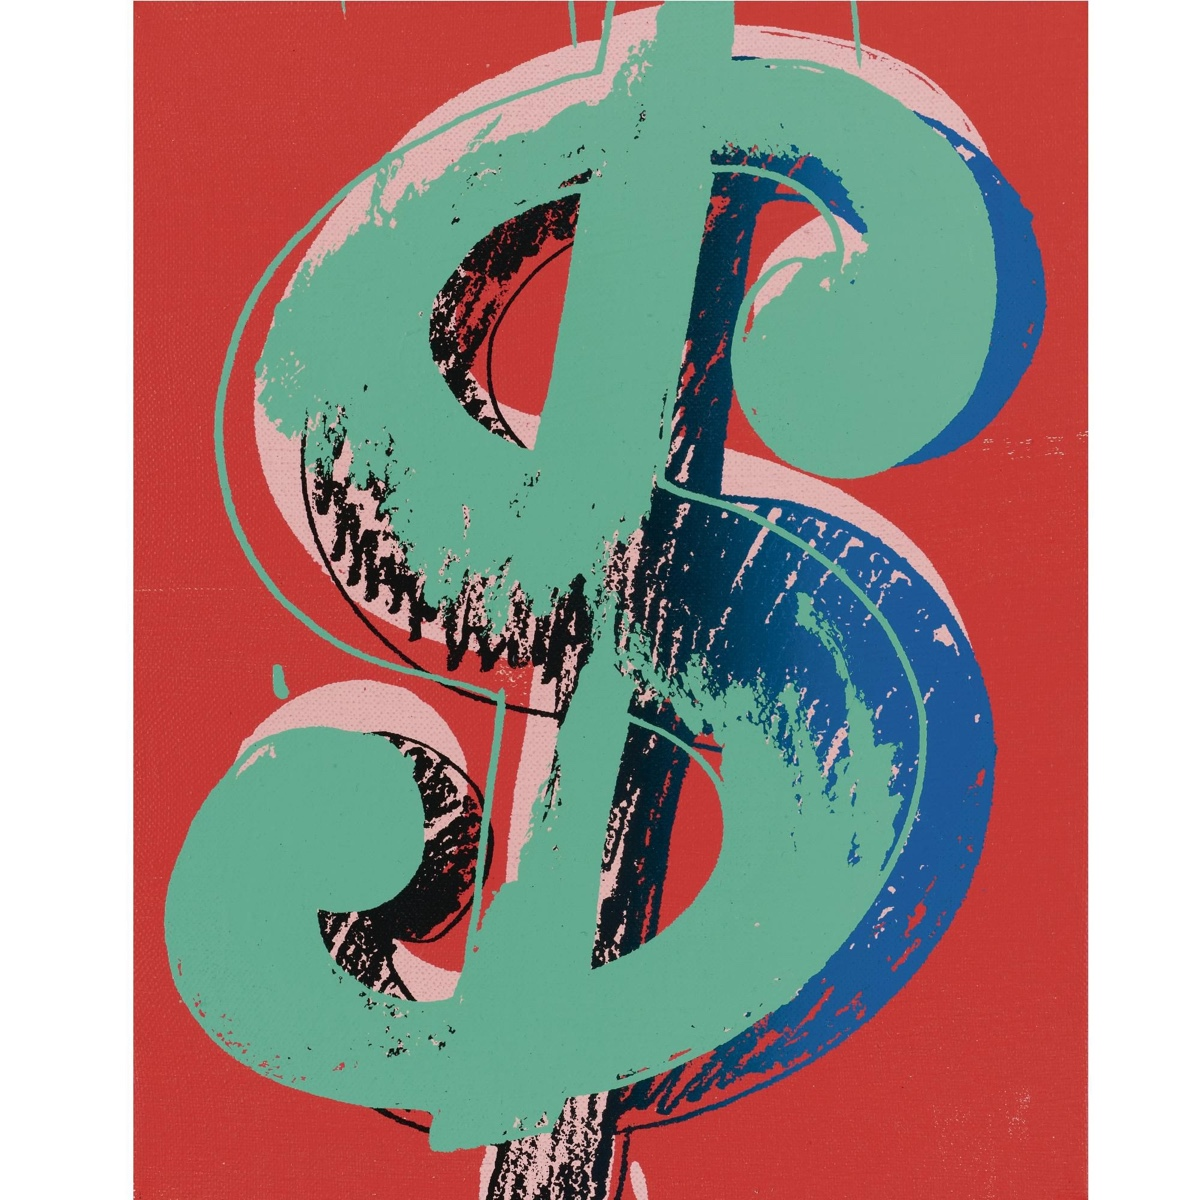 This is just one of aseries of drawings and paintings of the Dollar Sign by Andy Warhol.